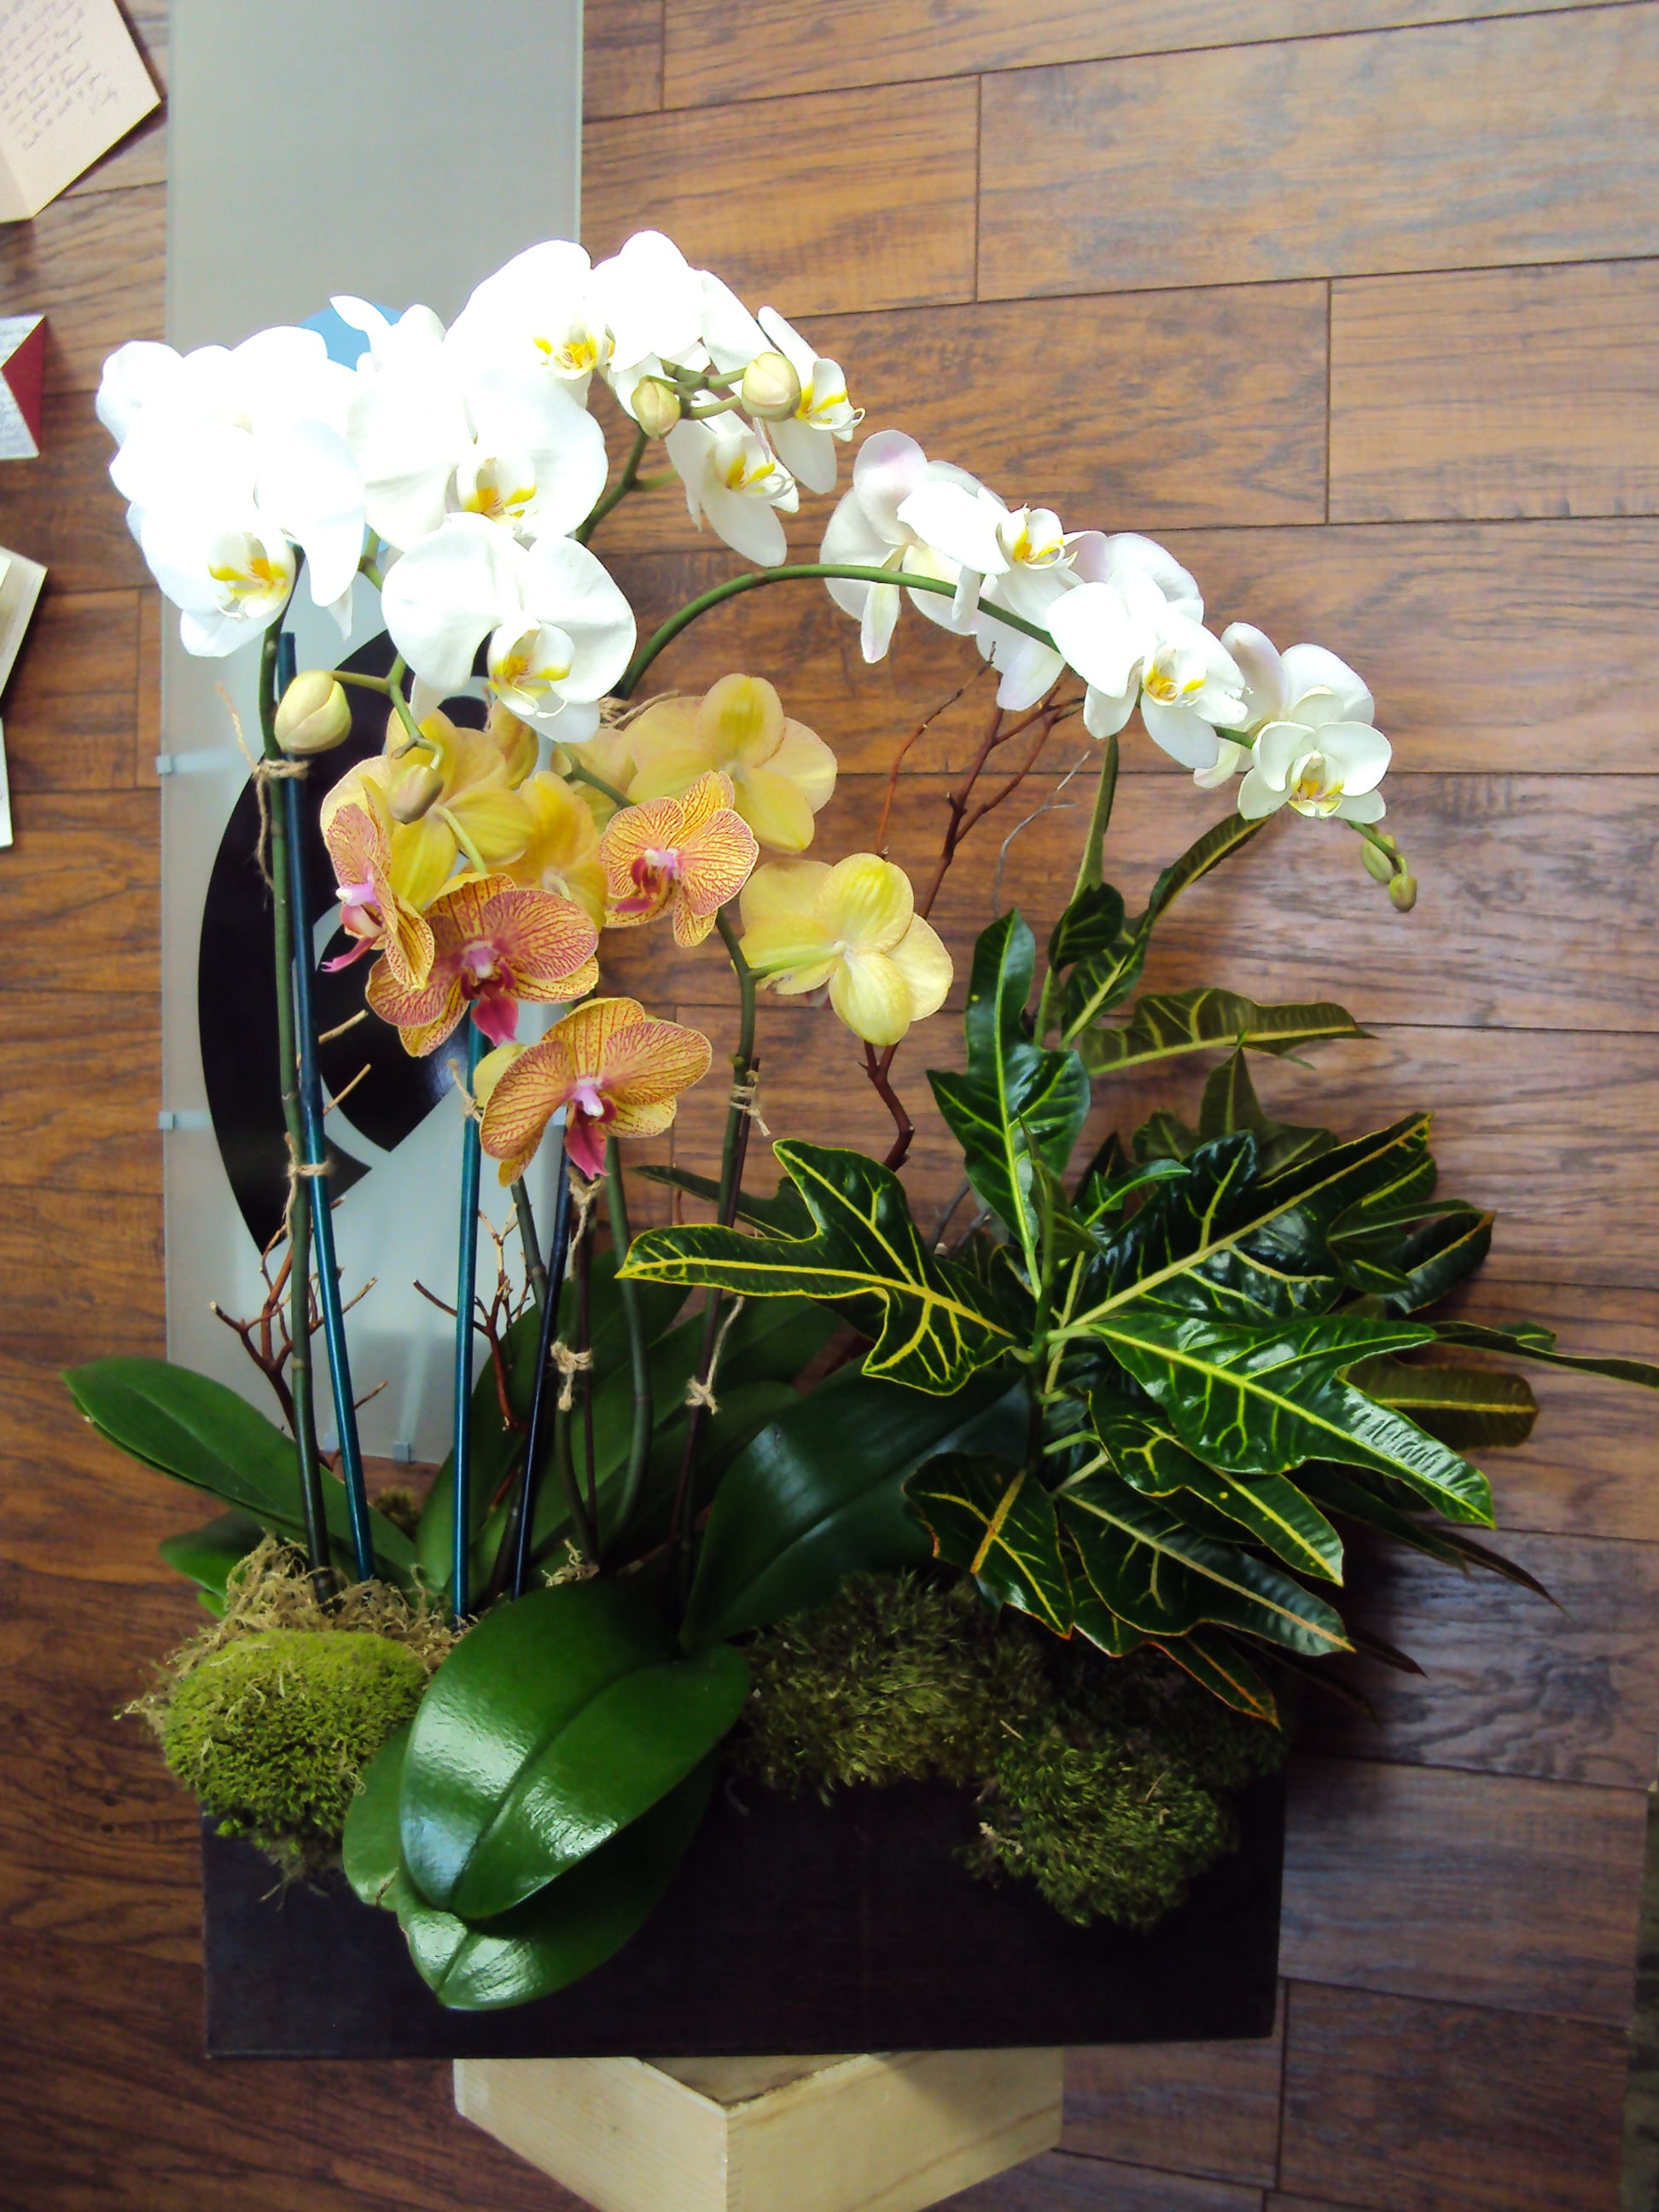 Phalaenopsis Orchids and Indoor Plant Mix in El Segundo, CA | Natural  Simplicity